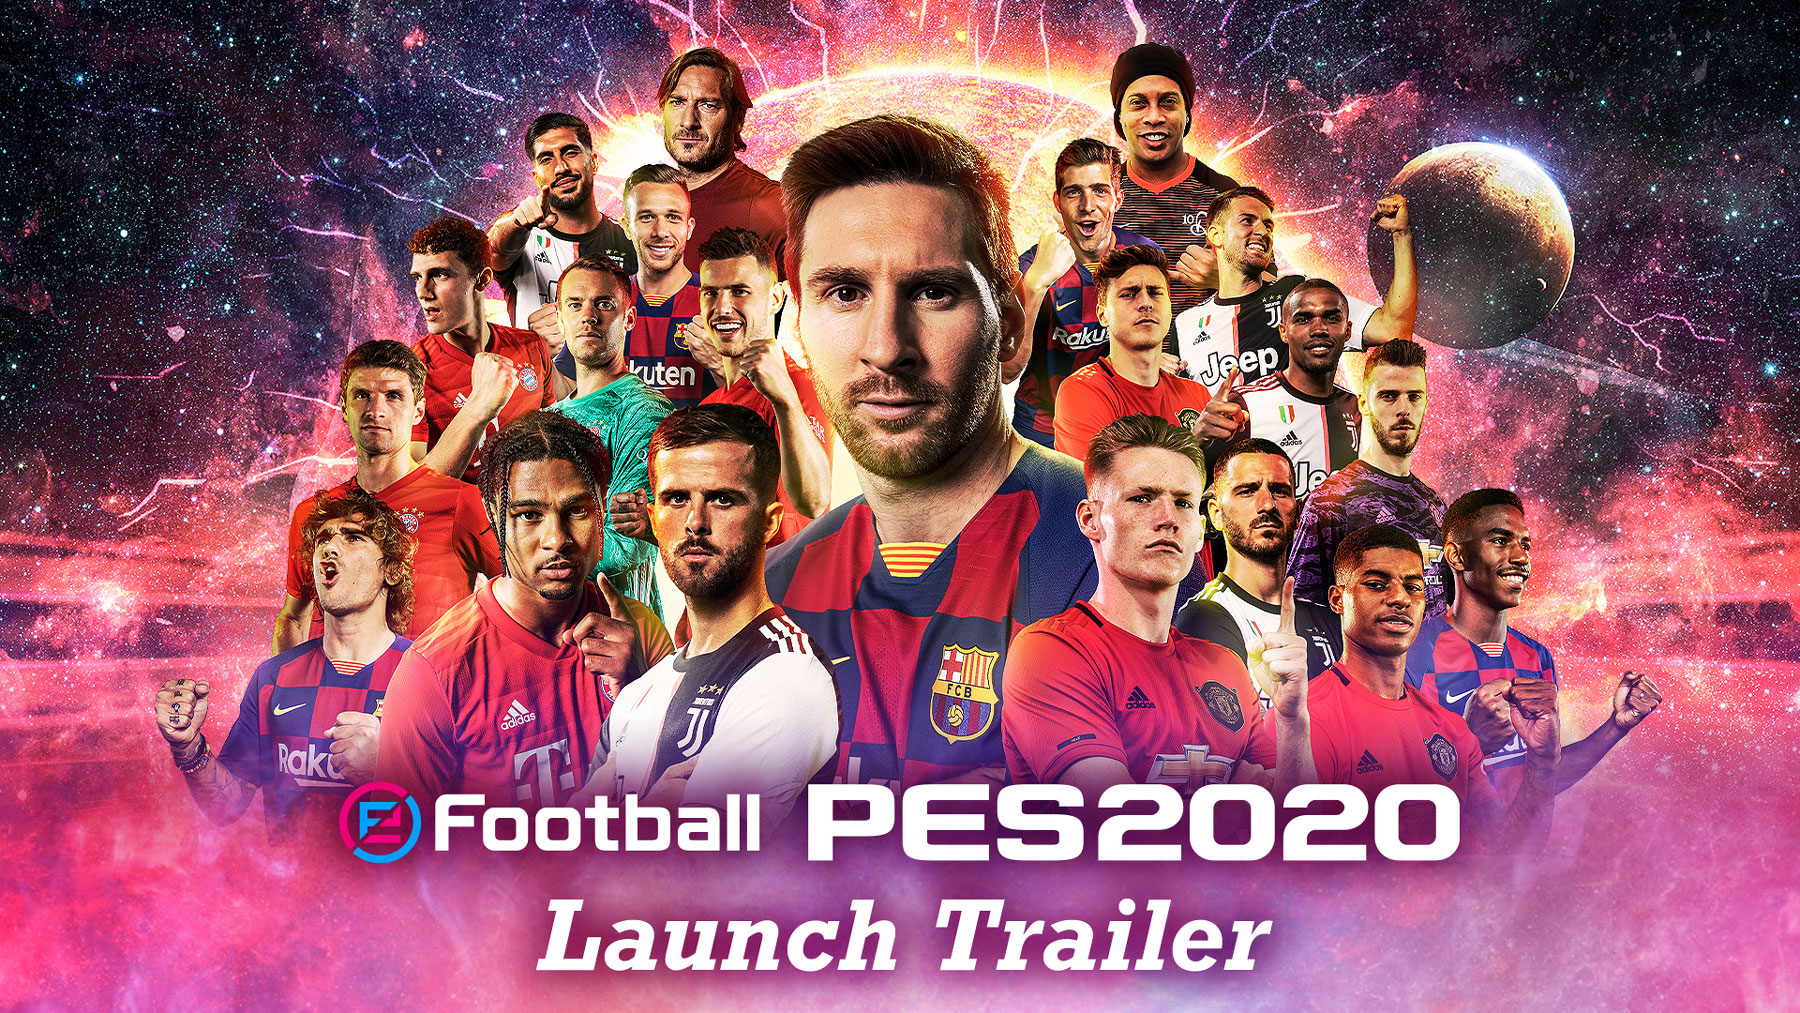 PES 2020 Launch Trailer